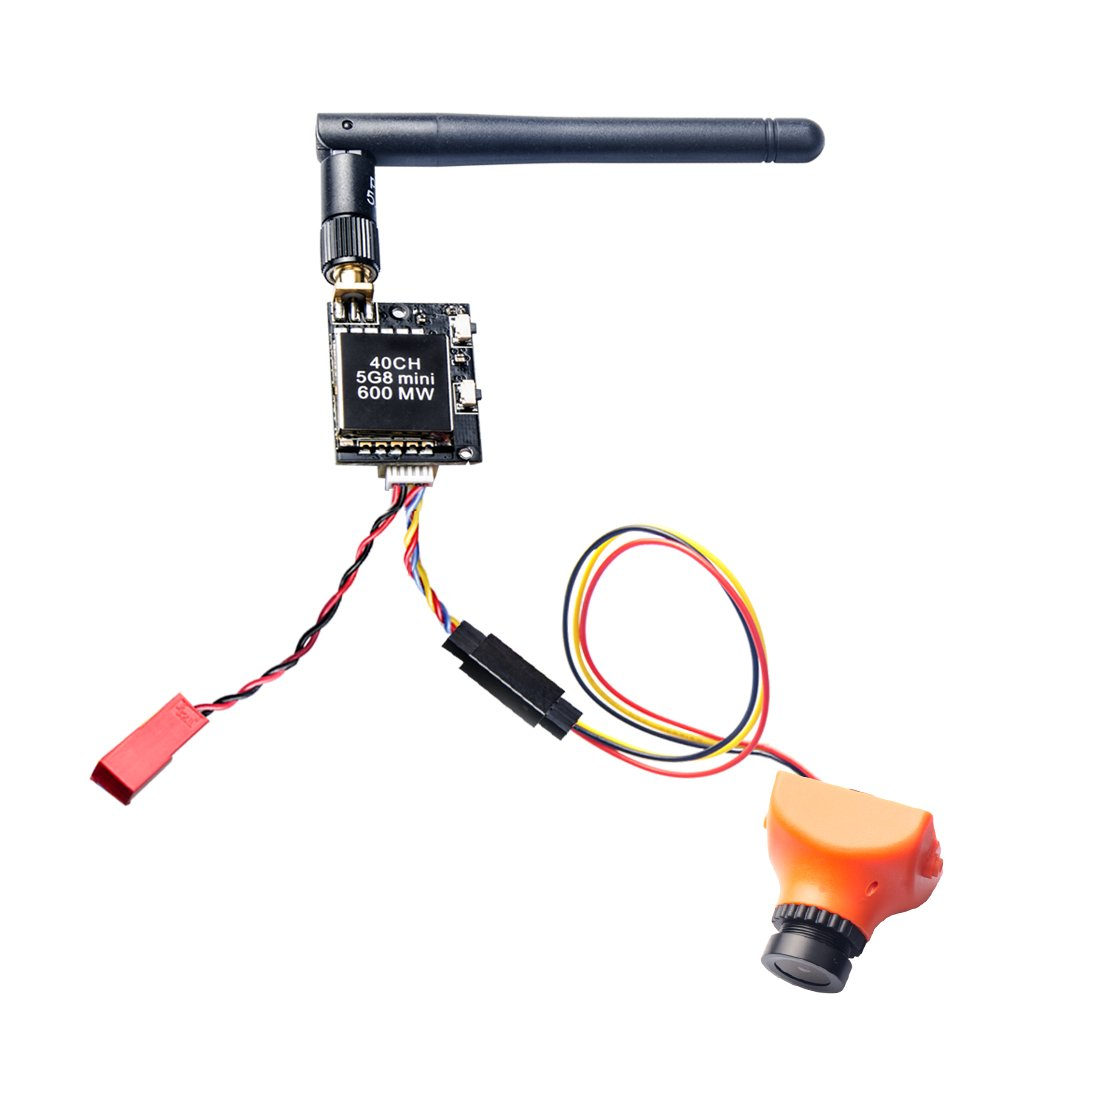 Amazon.com: AKK KC02 600mW FPV Transmitter 600TVL 2.8MM 120 Degree High  Picture Quality Sony CCD Camera FPV Multicopter: Toys & Games